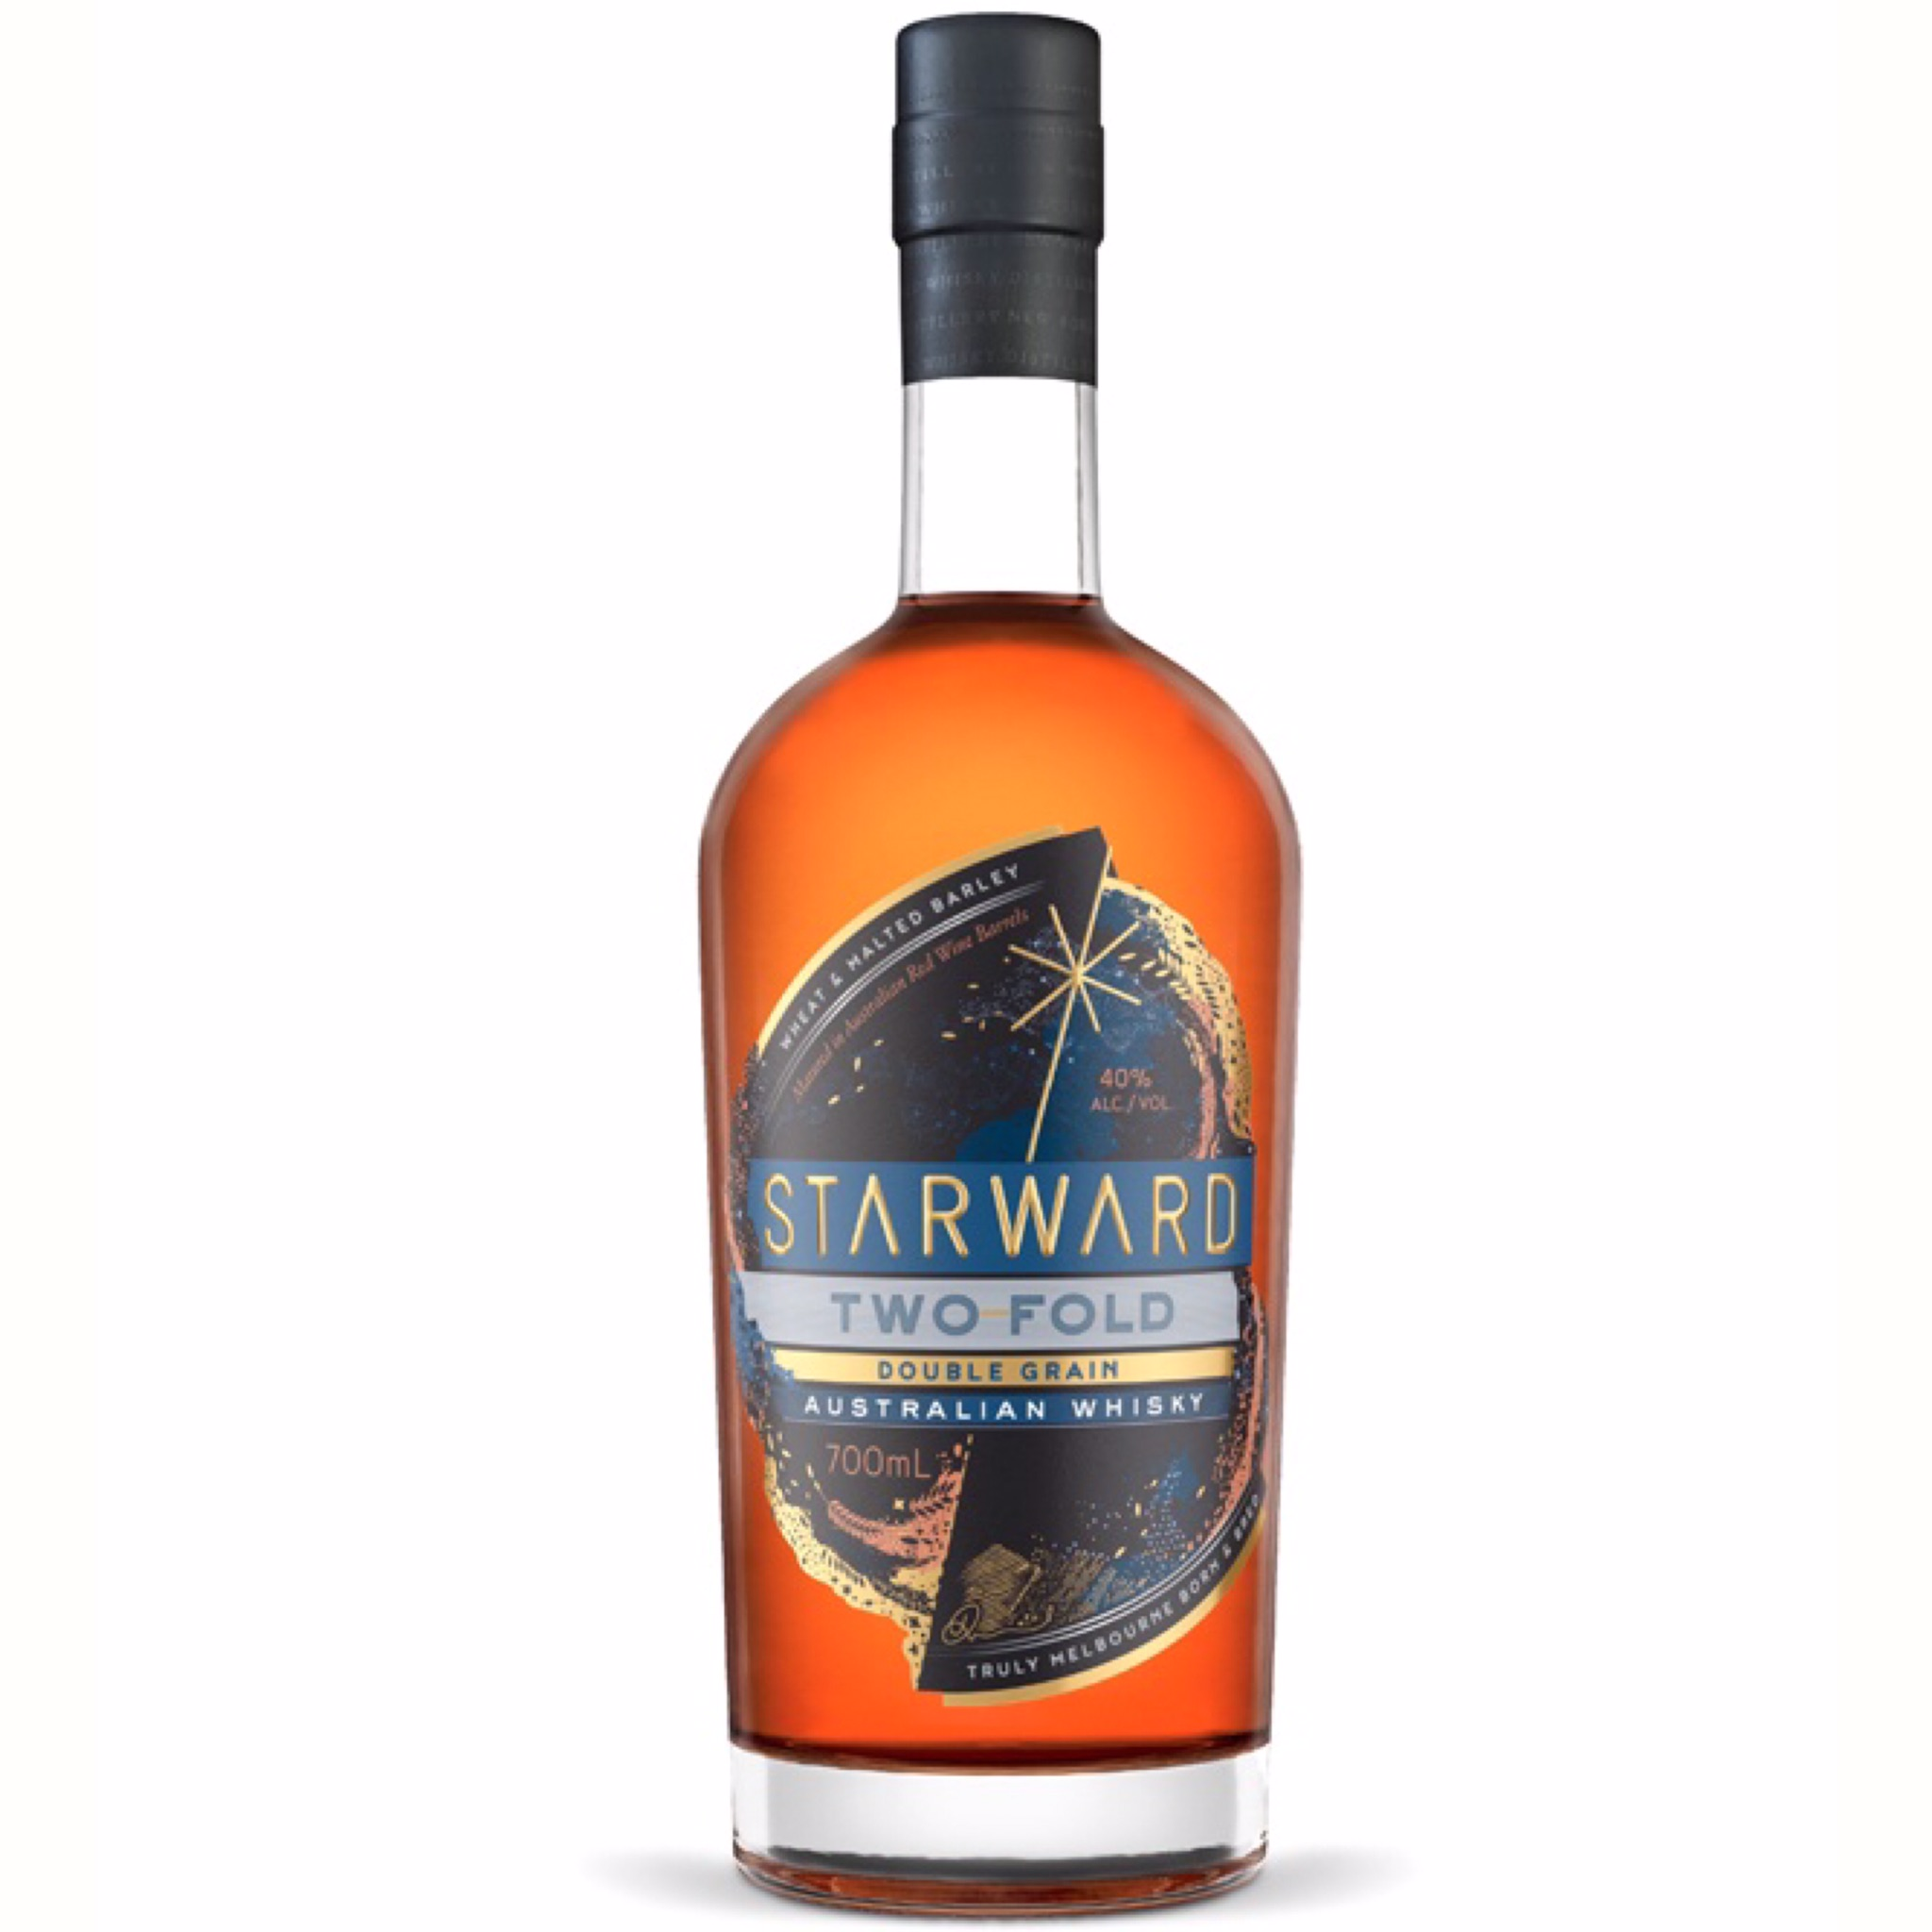 Starward Two Fold Australian Whisky 40% 700ml